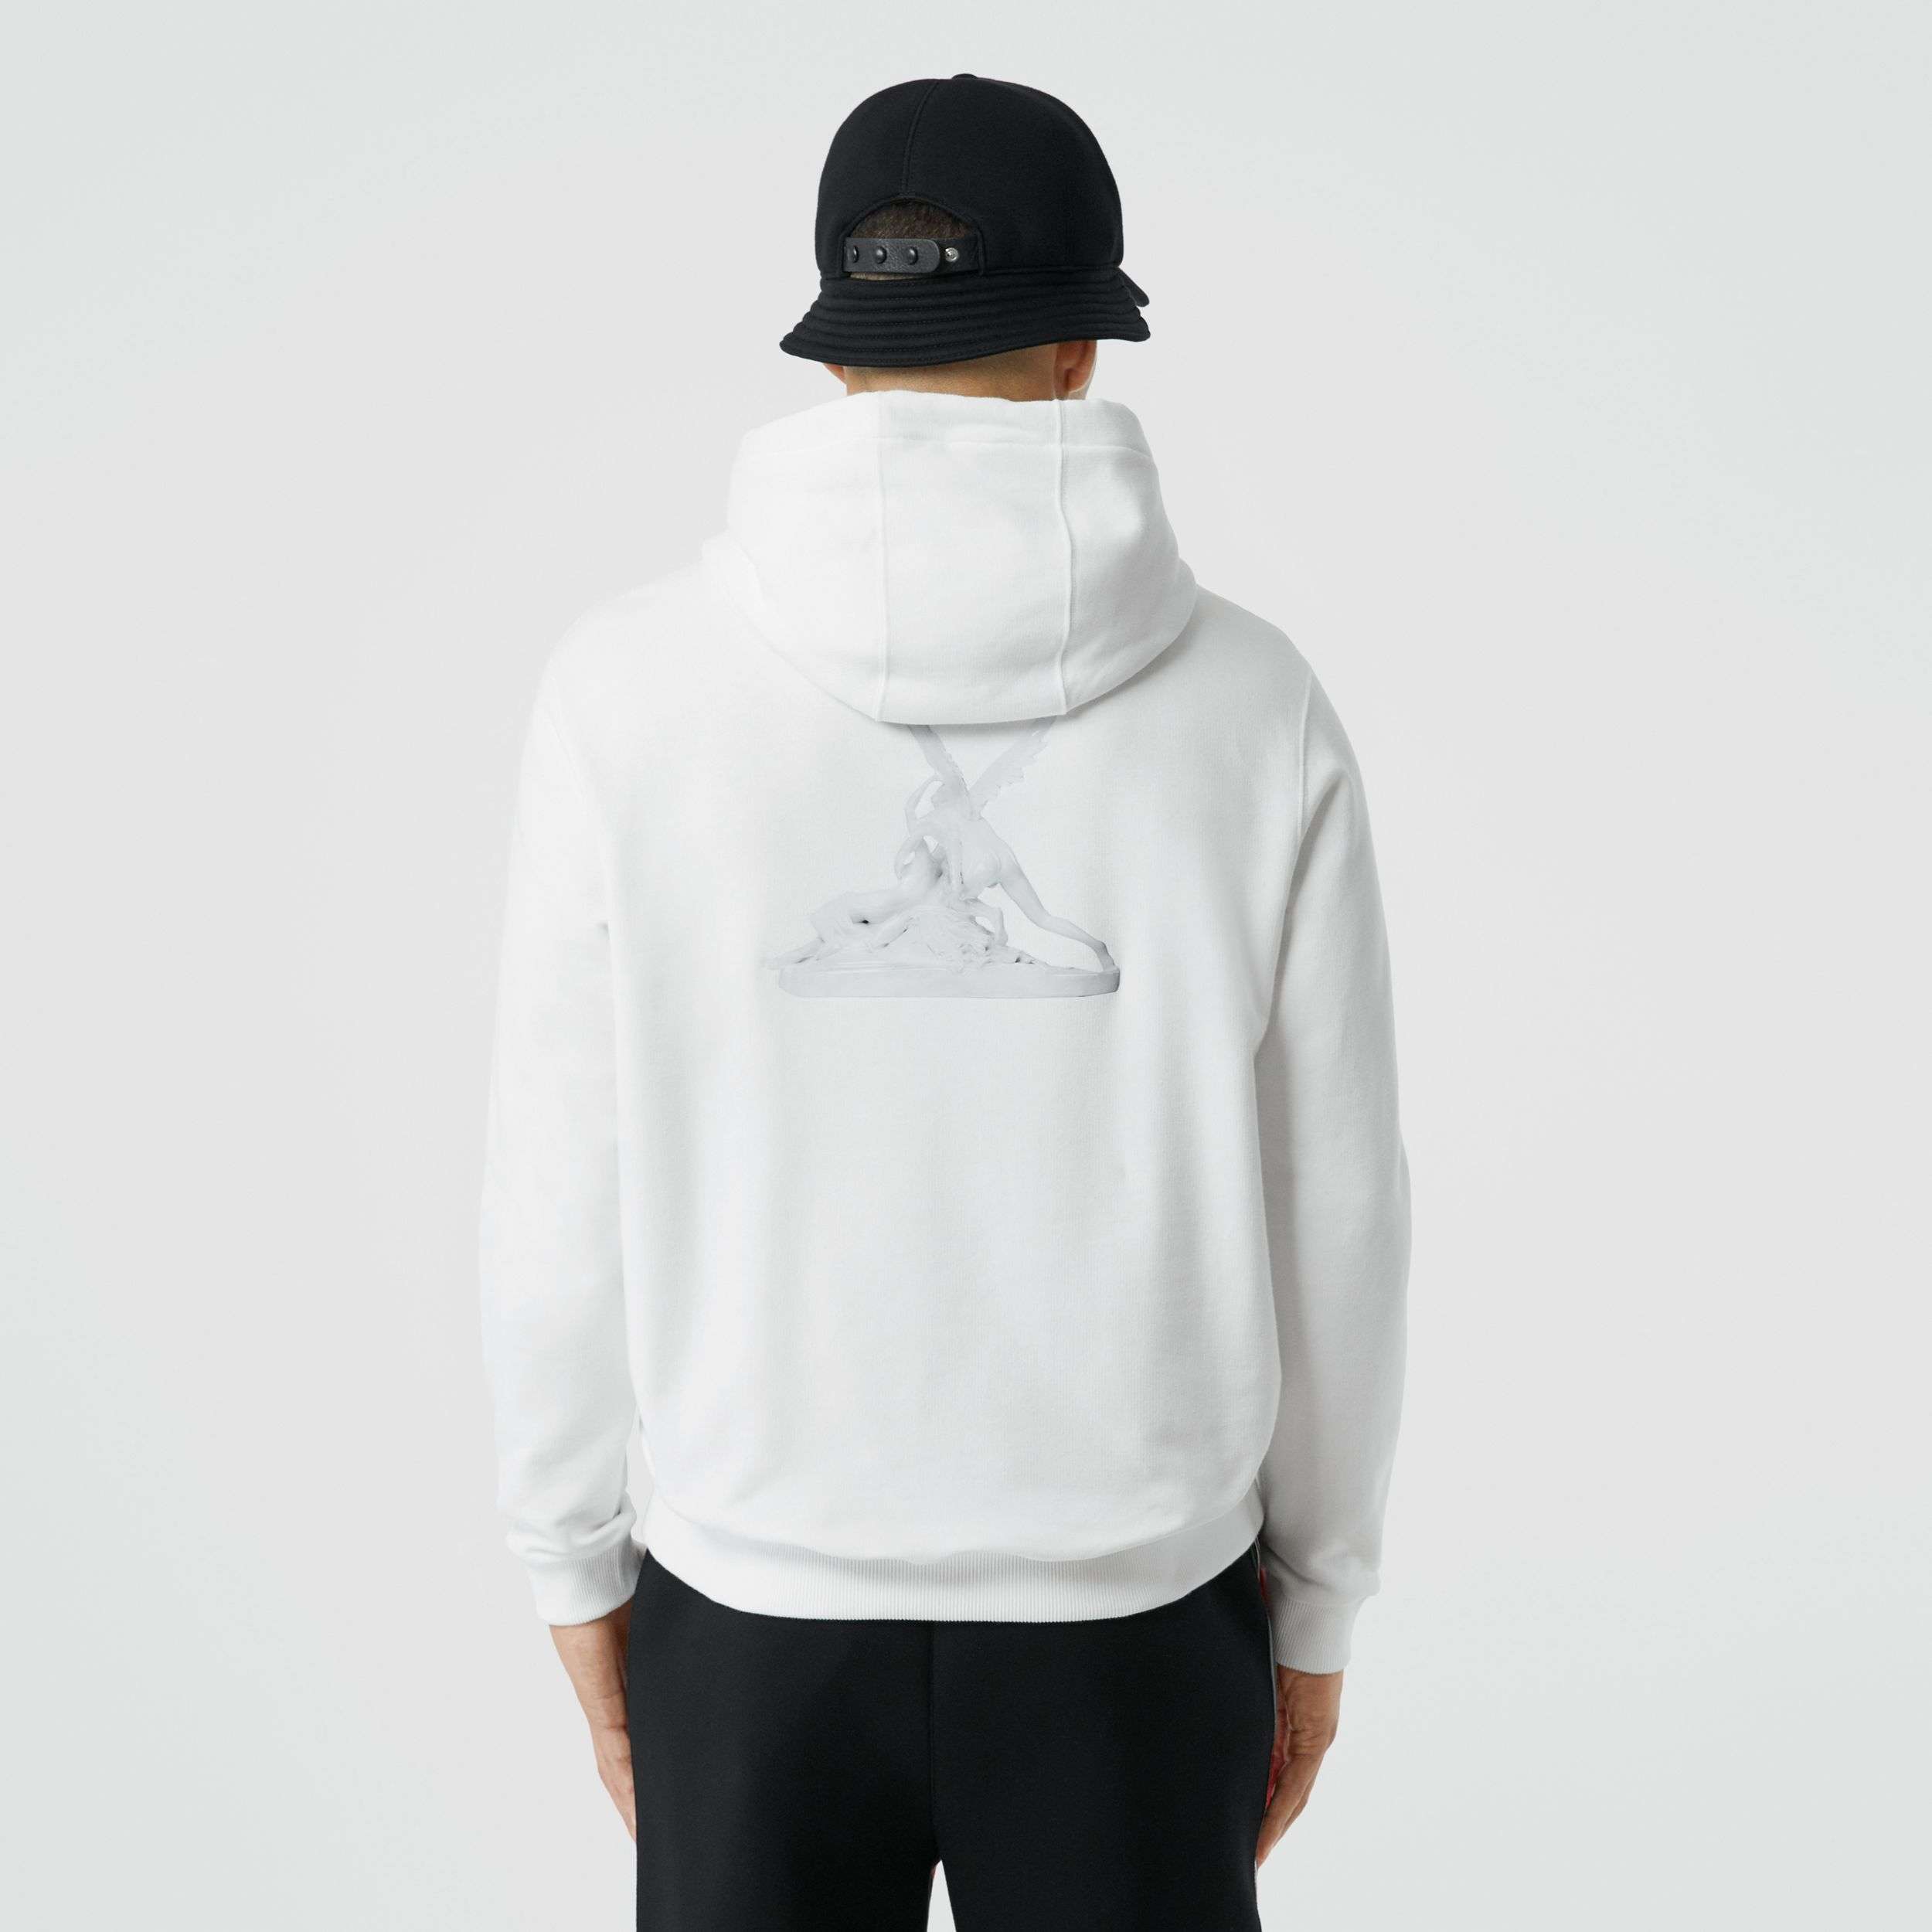 Cupid Print Cotton Oversized Hoodie in White - Men | Burberry - 3